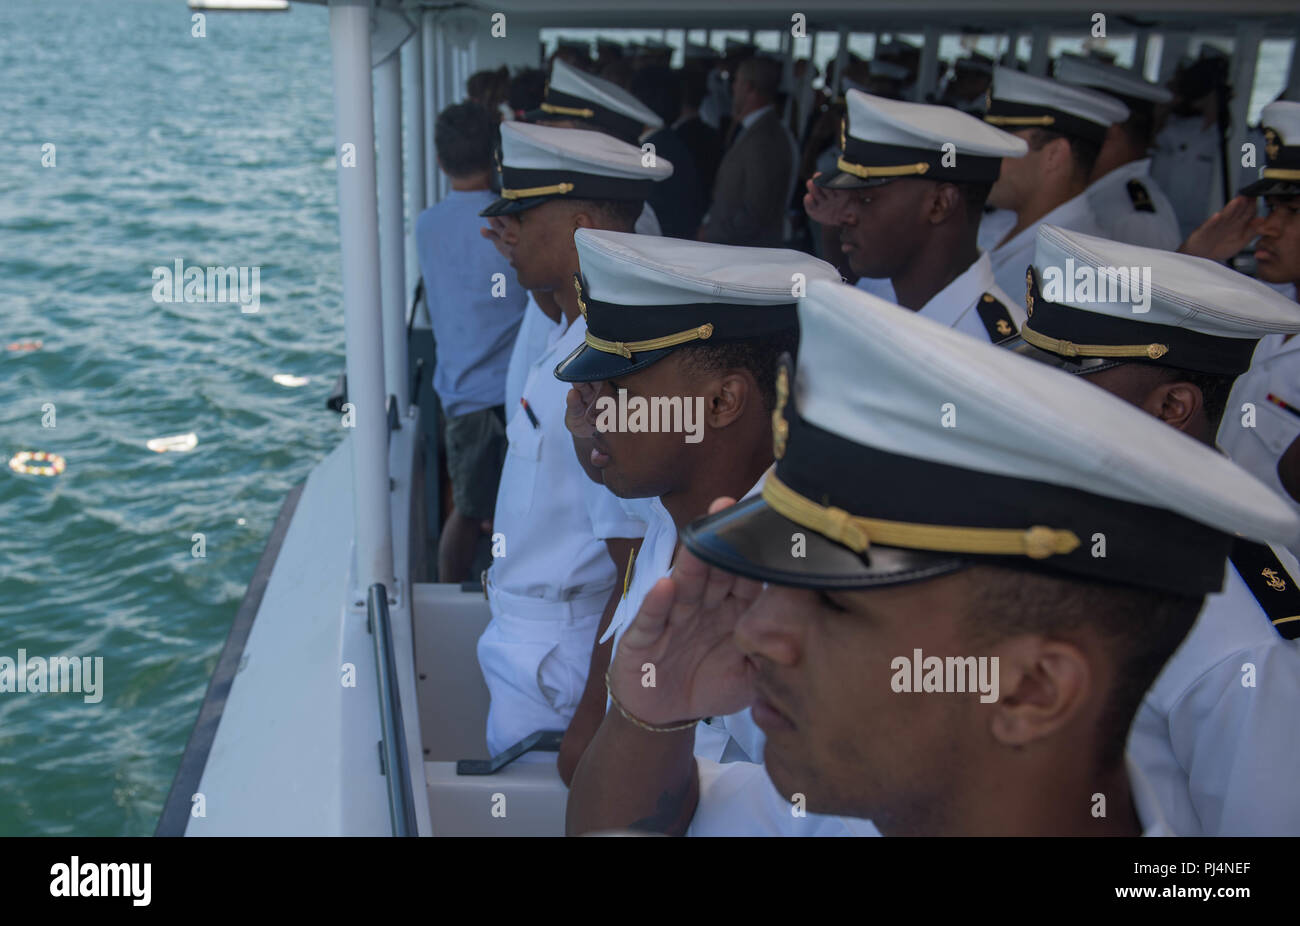 180831-N-AV243-0009 PEARL HARBOR (August 31, 2018) U.S. Navy Midshipmen honor the lives lost on December 7th, 1941 during a Pearl Harbor memorial boat tour.  The U.S. Navy Midshipmen visited the Pearl Harbor visitor center the day prior to their game against University of Hawaii's Rainbow Warriors on September 1, 2018. (U.S. Navy photo by Mass Communication Specialist 2nd Class Somers T. Steelman.) Stock Photo